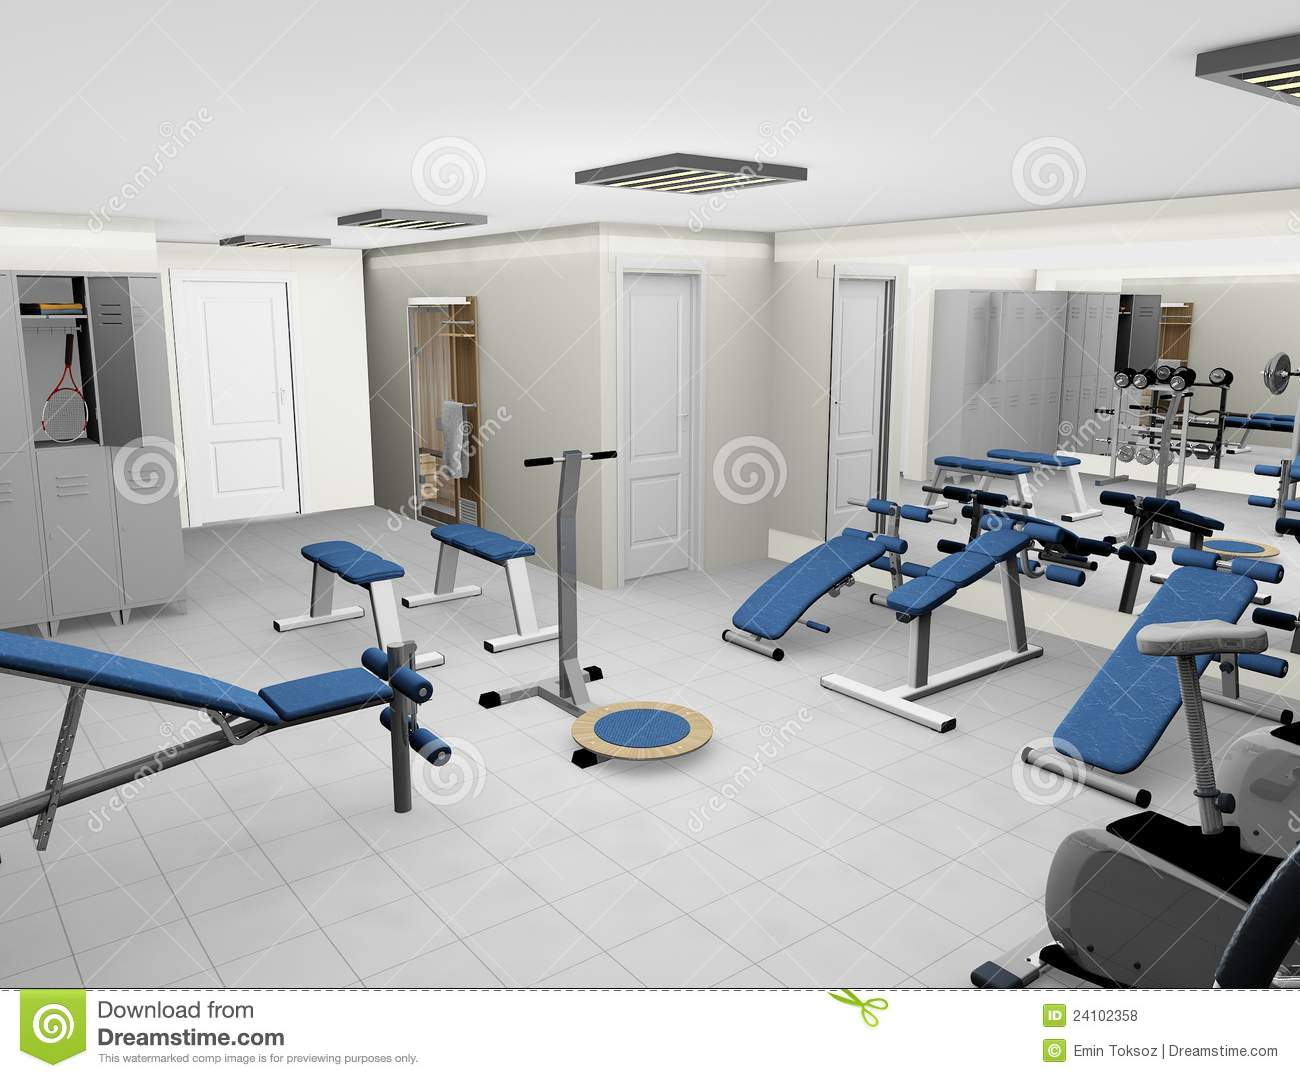 Modern d fitness room stock illustration of